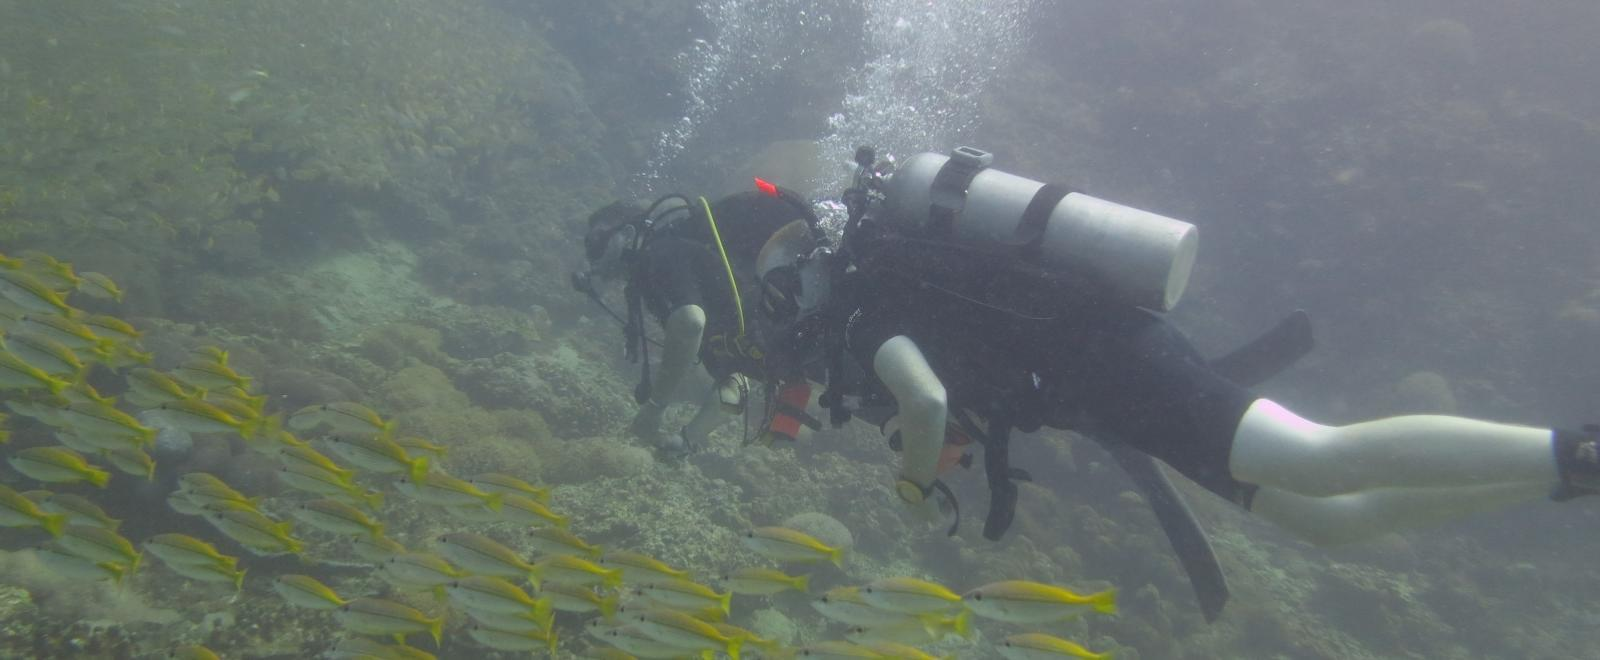 A projects Abroad volunteer swimming with fishes whilst on a diving and marine conservation volunteering project.